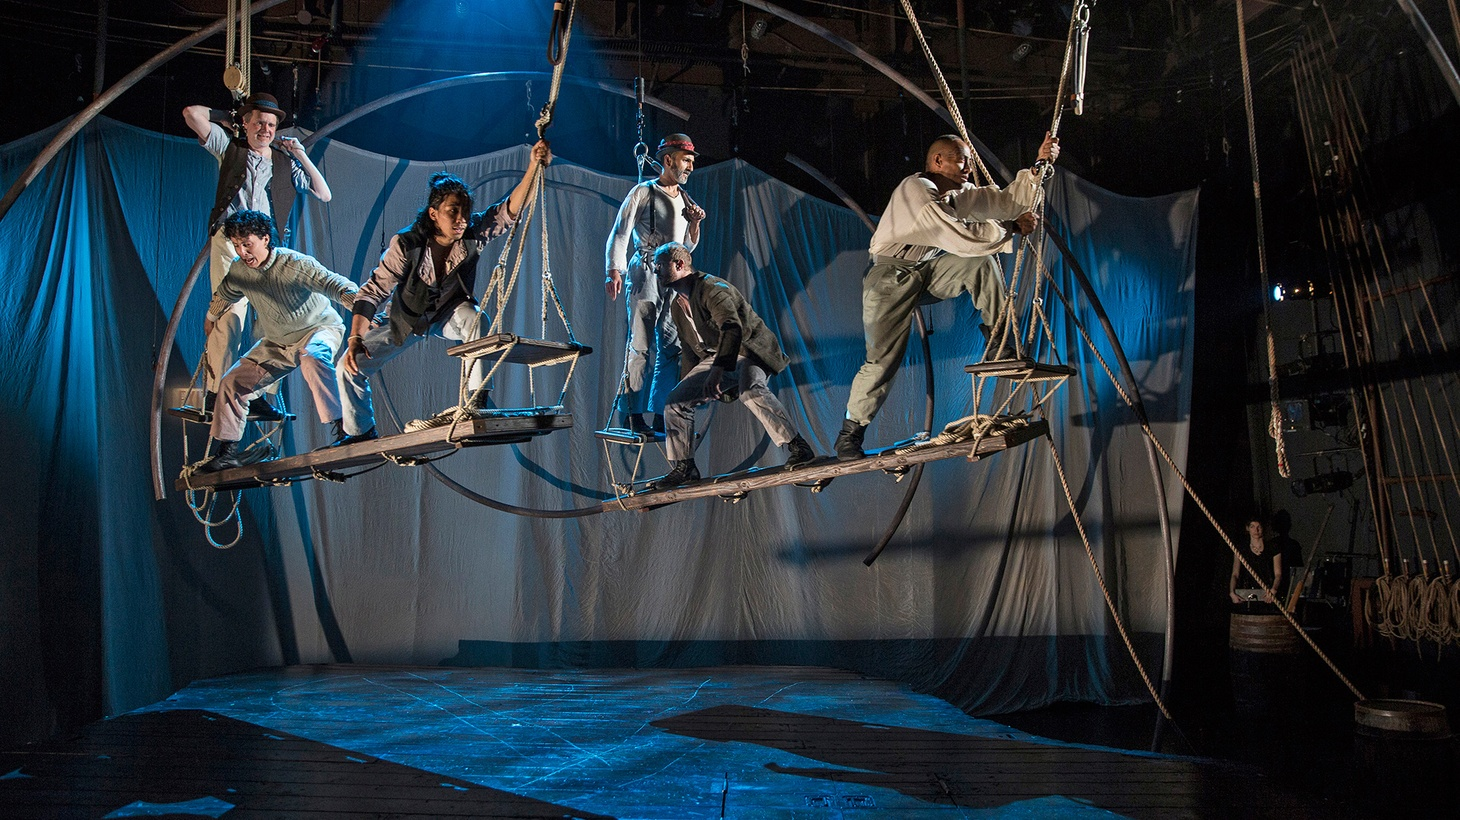 Lookingglass' Moby Dick is worth the trip south, just be prepared that not everything is smooth sailing.